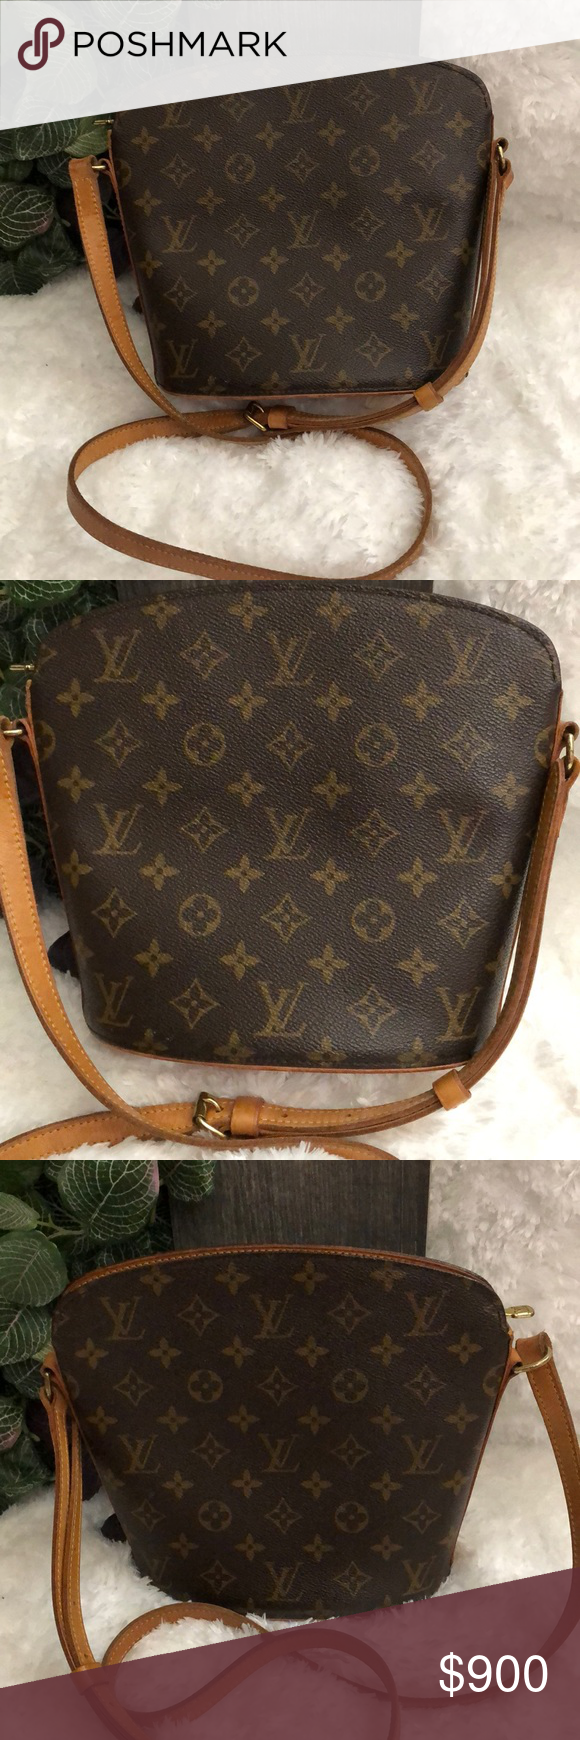 94b615dcdbca 100% Authentic Louis Vuitton Drouot Shoulder Bag 100% Authentic Vintage  Louis Vuitton (Retired